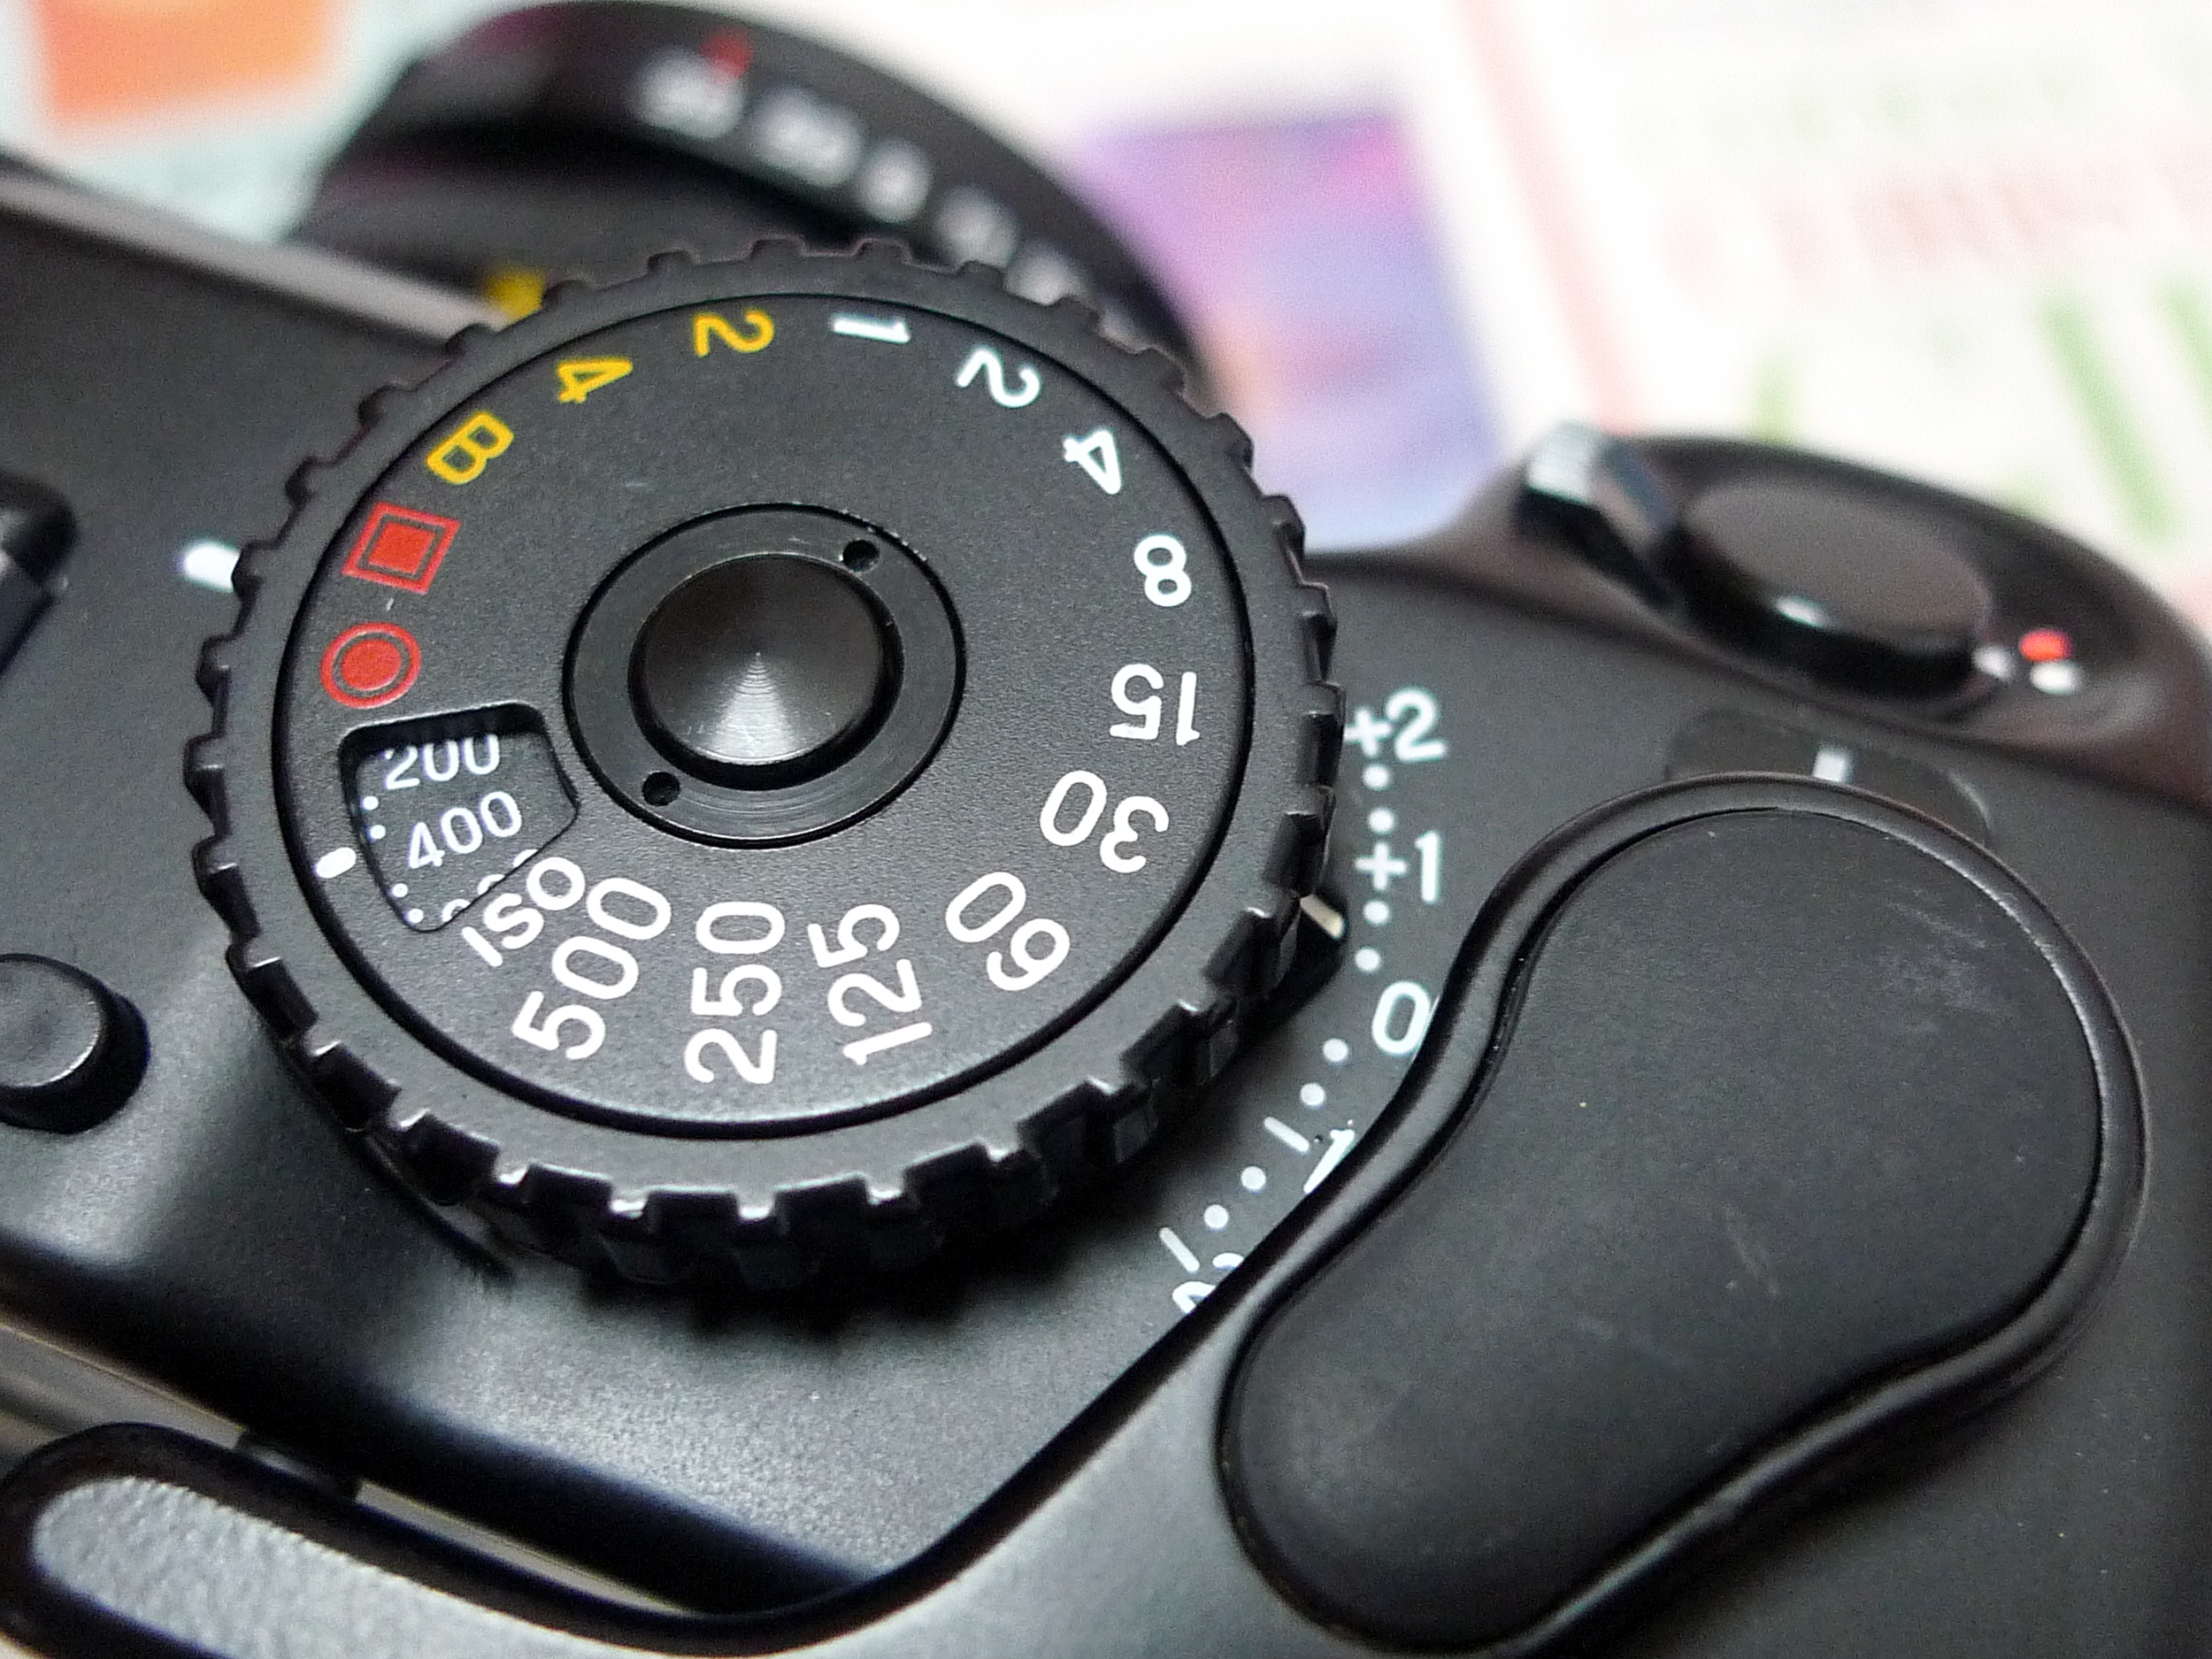 Shutter speed dial, EV compensation dial and ISO selection dial